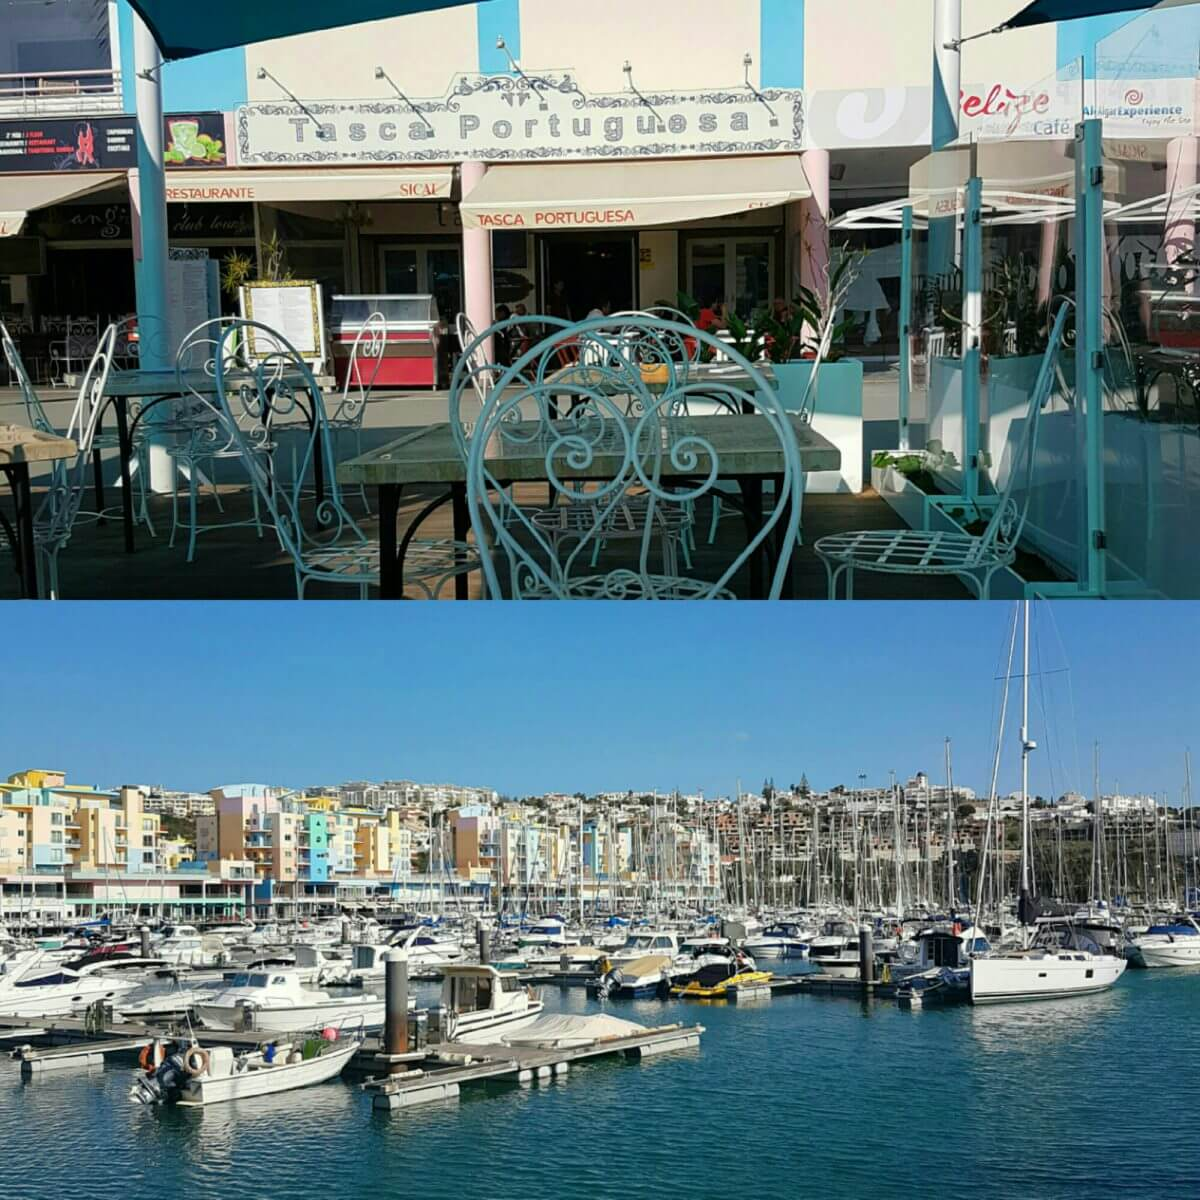 De leukste kindvriendelijke restaurants in de Algarve - Childfriendly restaurants Algarve with kids - Albufeira Marina Tasca Porguesa